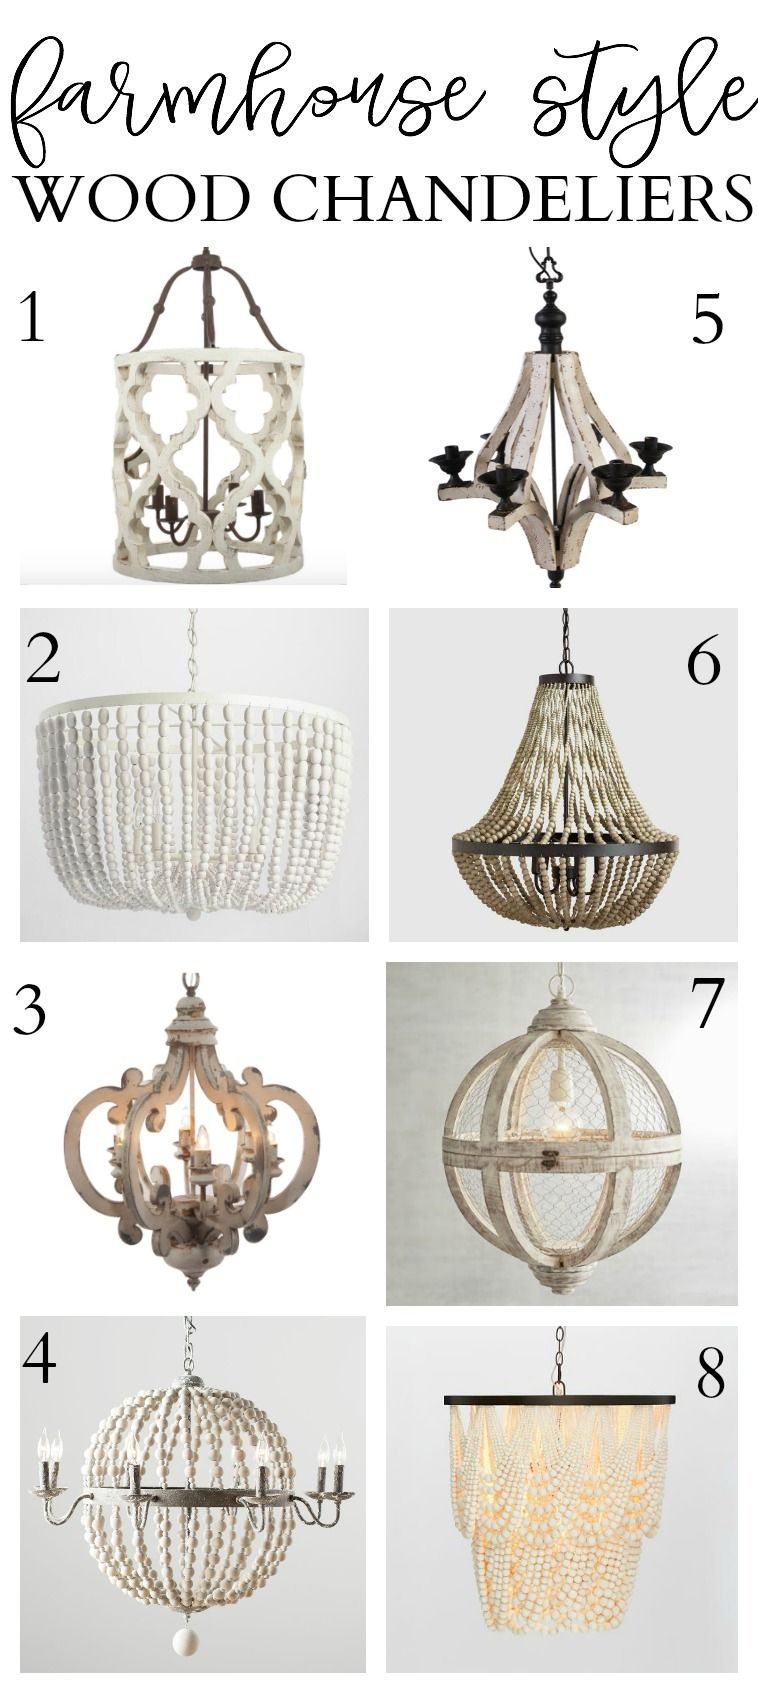 Our New Living Room Light 8 Farmhouse Style Wood Chandeliers